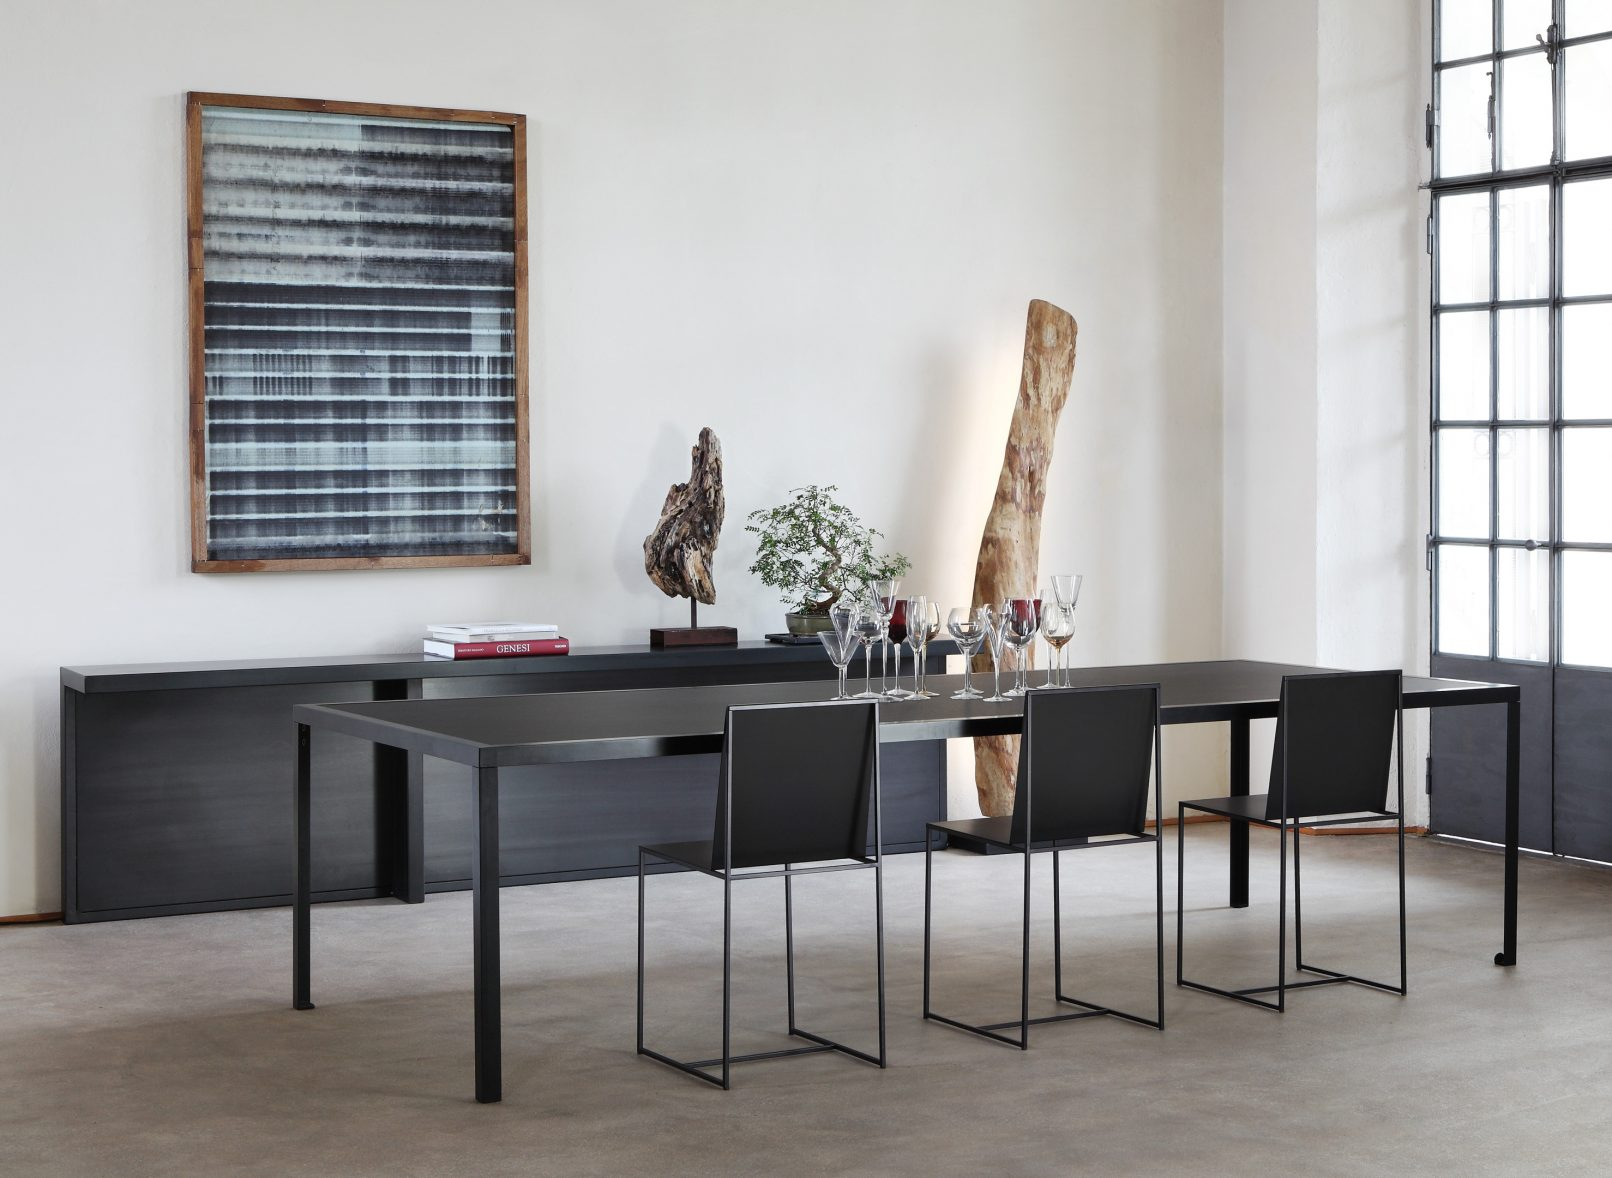 Slim sissi zeus noto for Table extensible kristalia